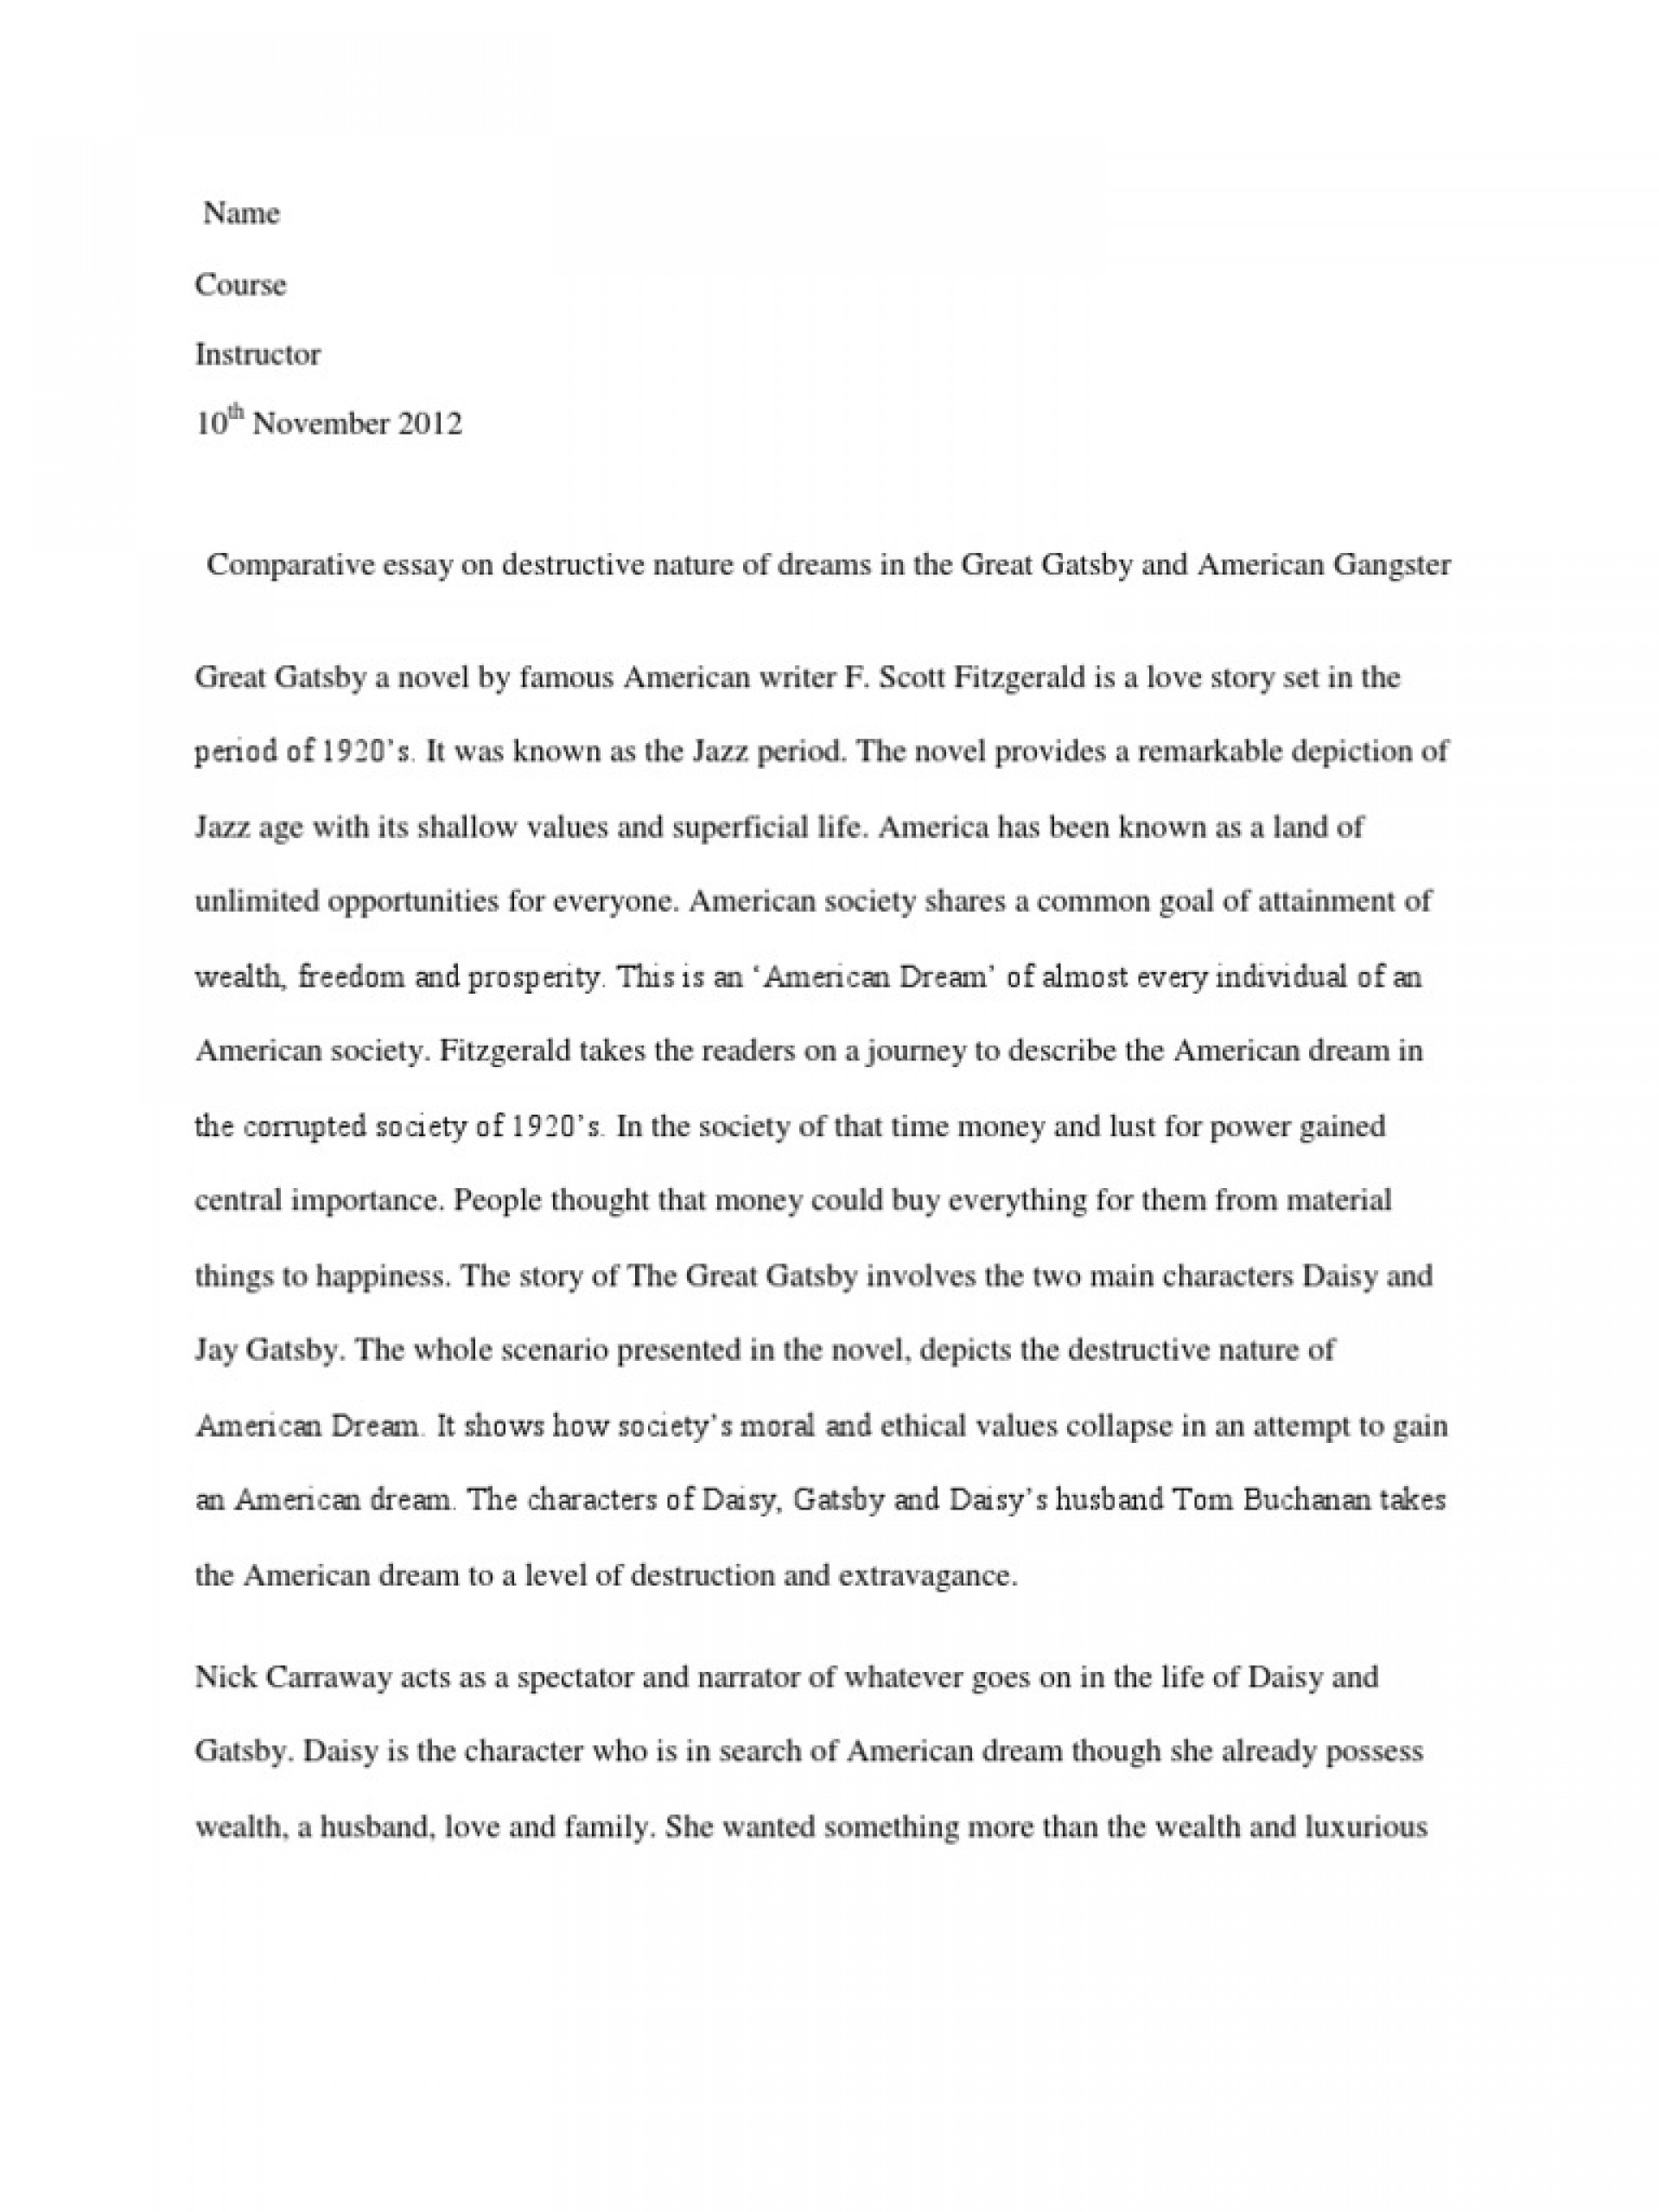 001 Essay Example The American Dream In Great Gatsby Comparative On Destructive Nature Of Dreams  5884869ab6d87f259b8b49e2 Rare Corruption Decline1920